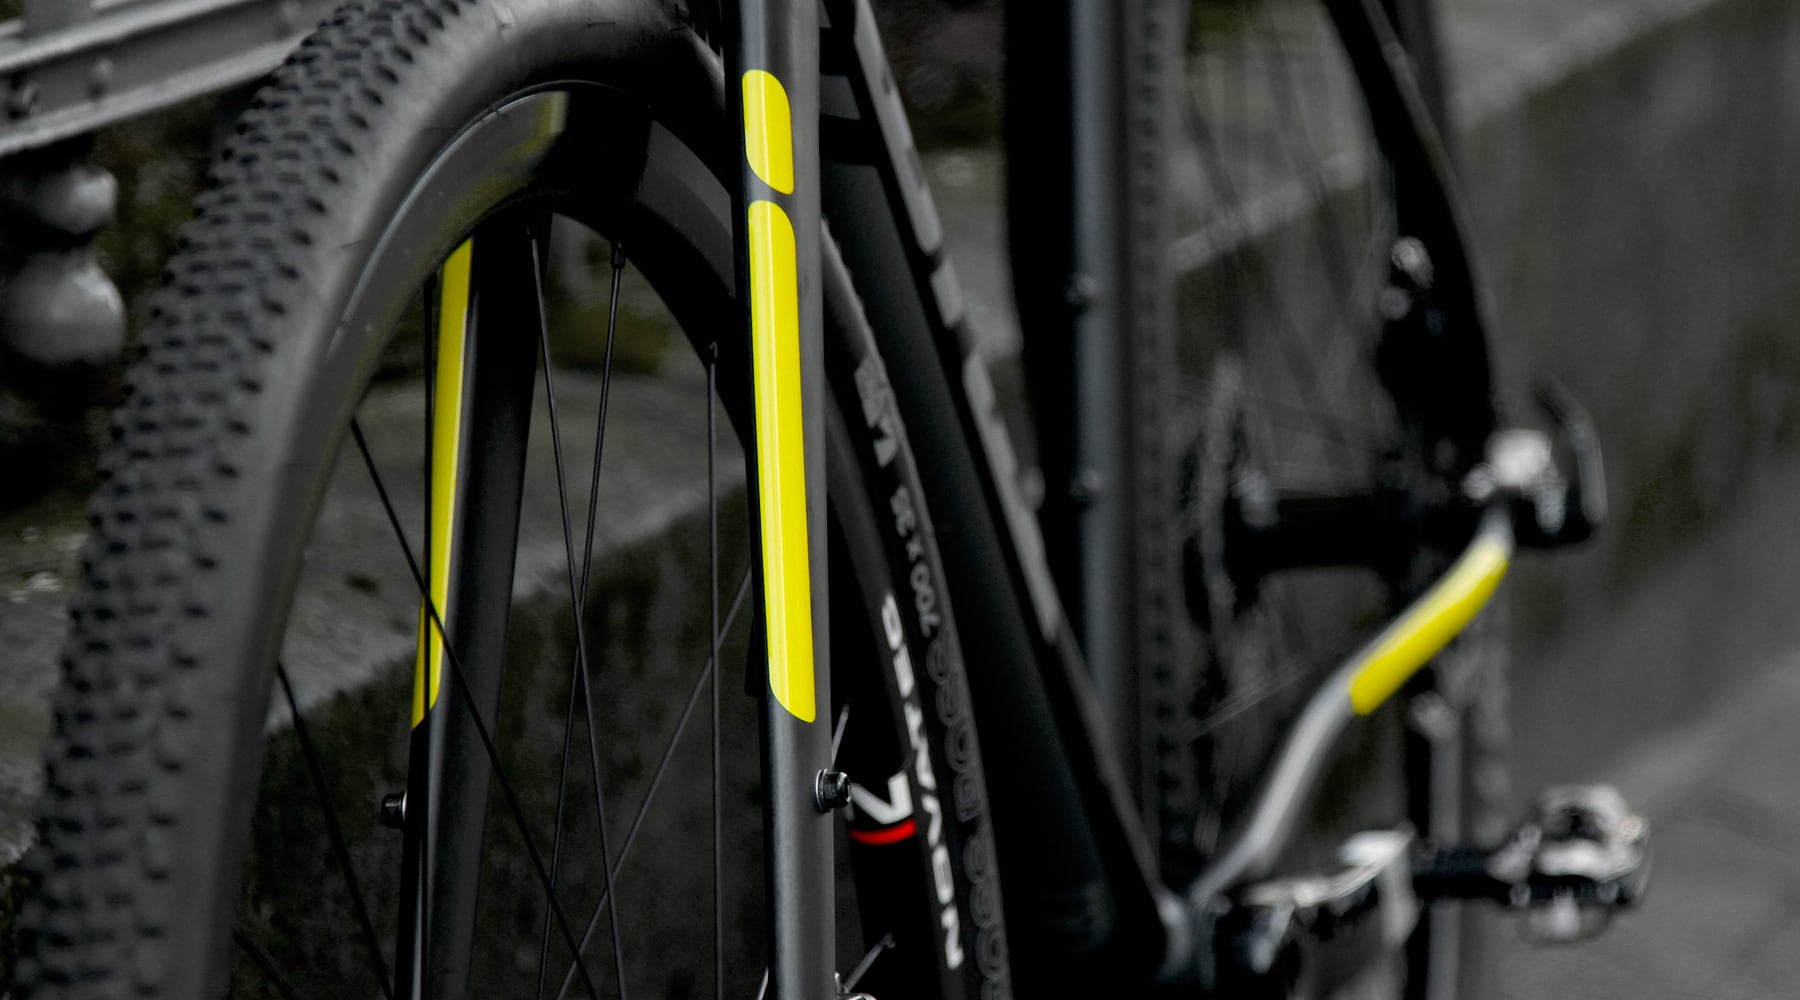 FLECTr reflective frame kit for cycles - from high viz yellow to stealth black